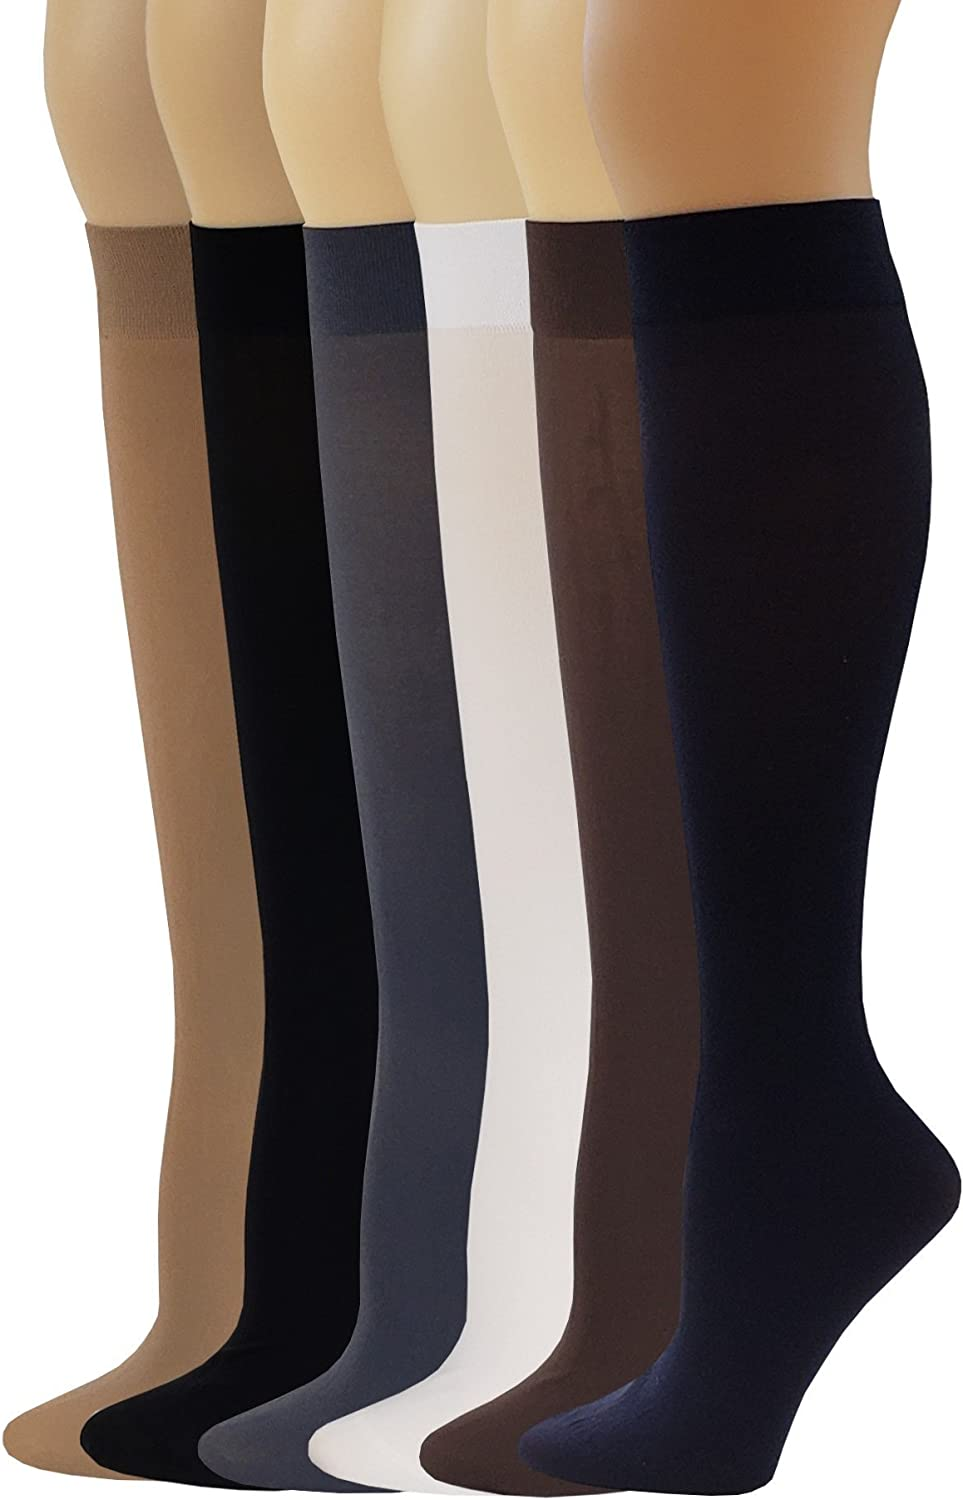 Silky Opaque Stretchy Nylon Knee Highs With Spandex 6 Pairs Womens Trouser  Socks Clothing Women